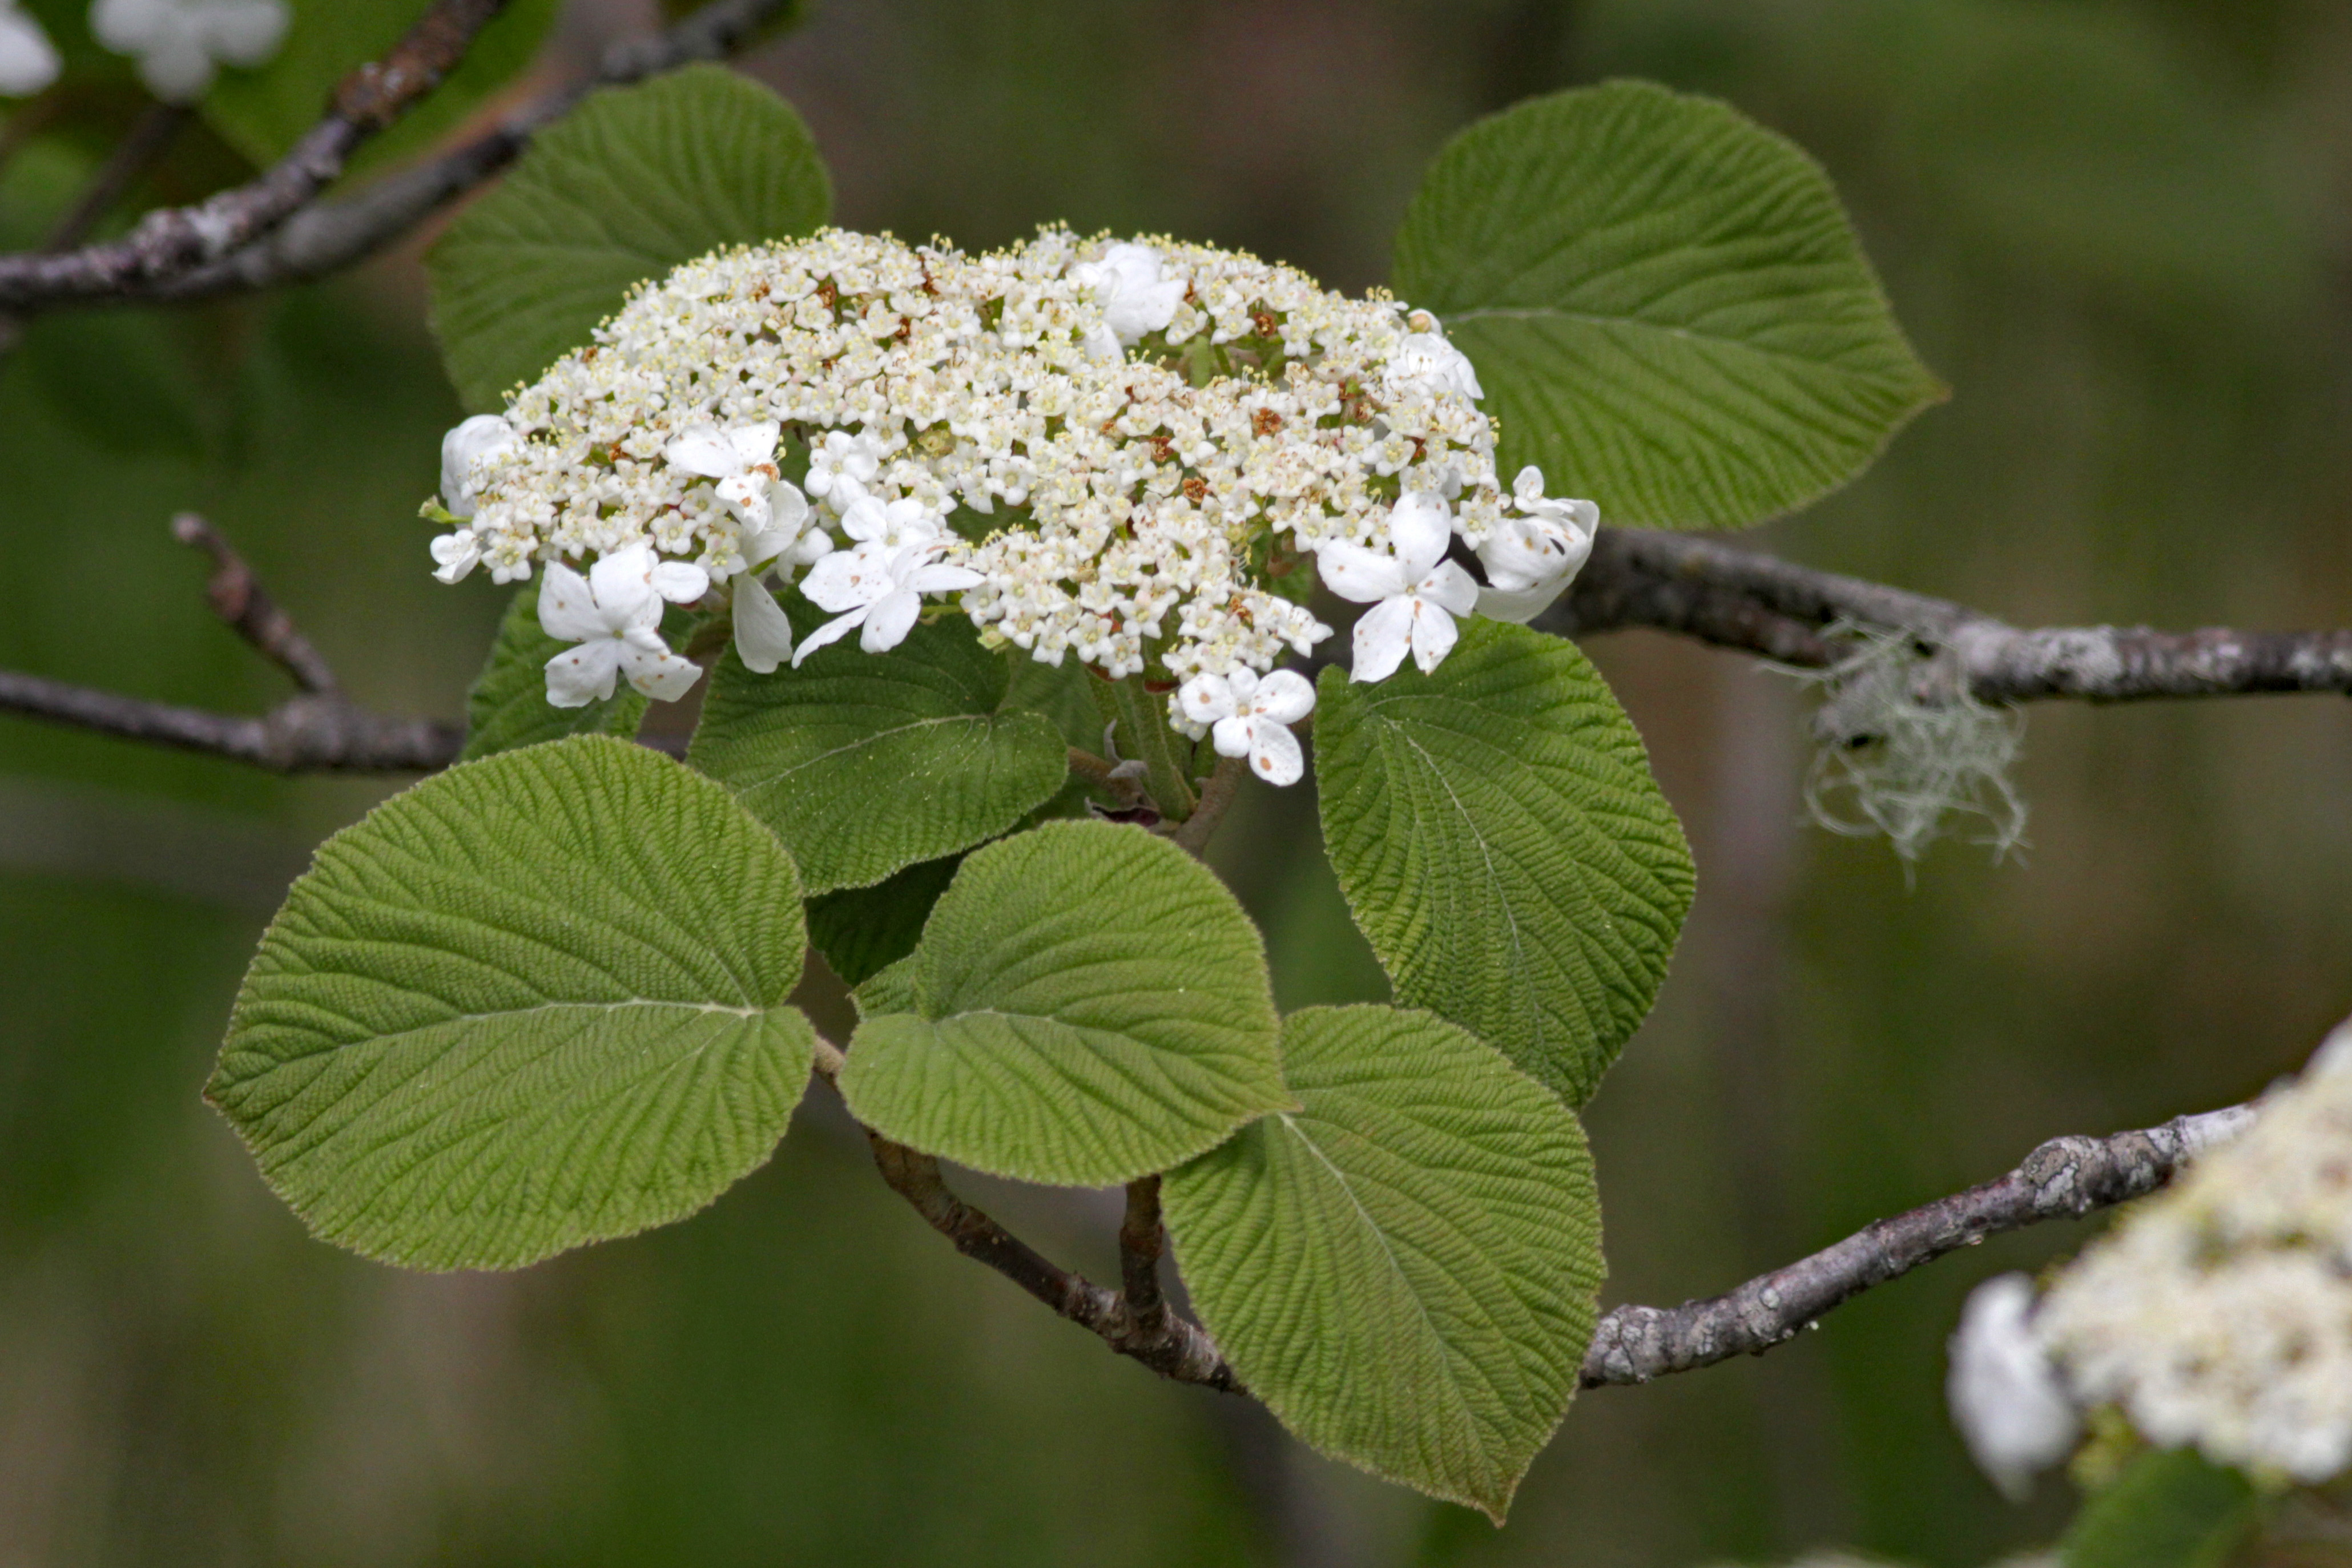 The Scientific Name is Viburnum lantanoides [= Viburnum alnifolium]. You will likely hear them called Hobble-bush, Witch-hobble, Moosewood. This picture shows the The inflorescence is a flat-topped cluster of small fertile flowers surrounded by larger, showy, white, sterile flowers. of Viburnum lantanoides [= Viburnum alnifolium]